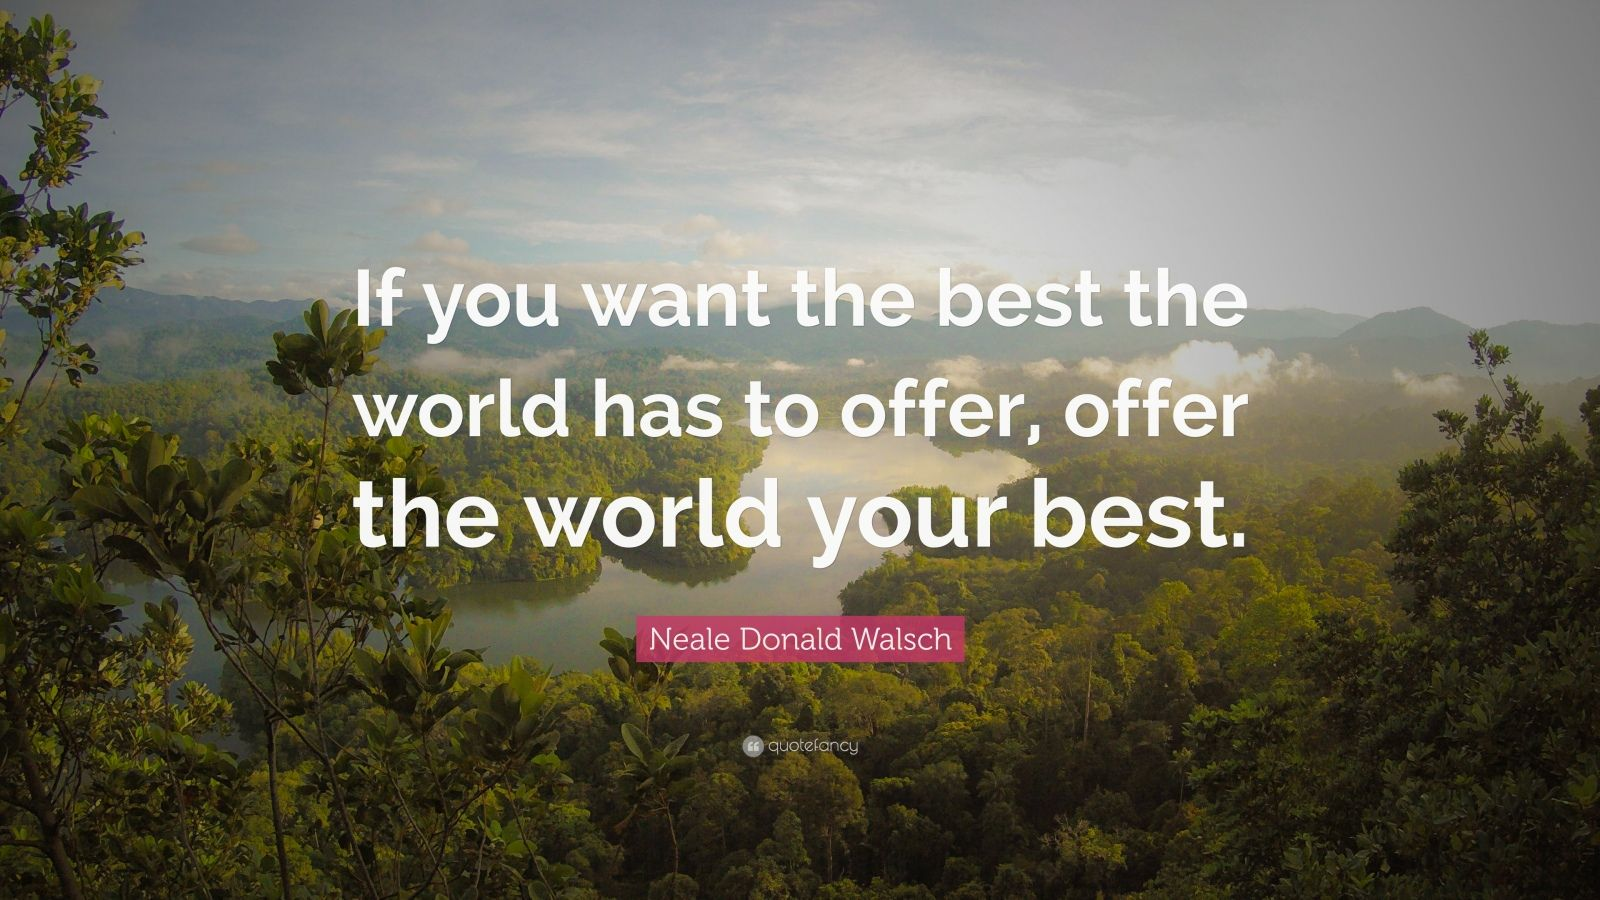 """Neale Donald Walsch Quote: """"If you want the best the world has to offer, offer the world your best."""""""